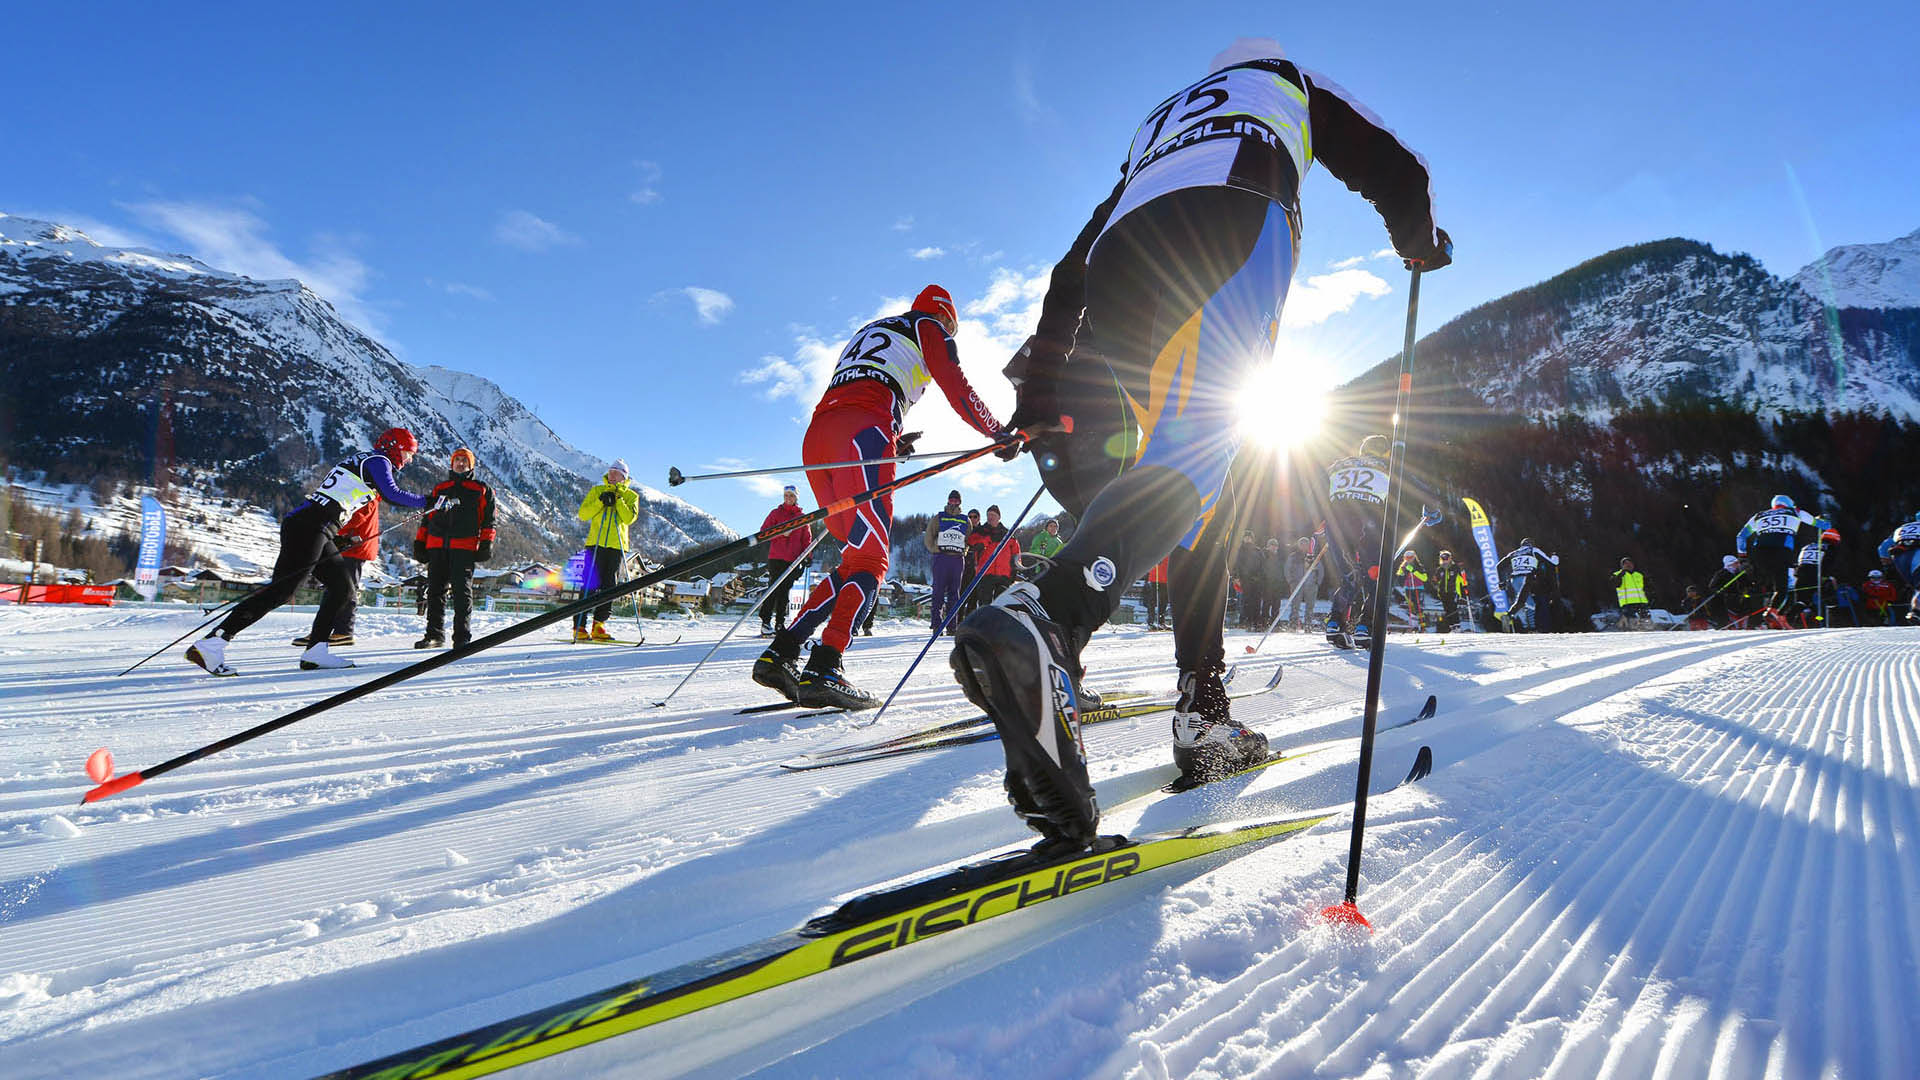 The registration for the MWC in Cogne has been extended